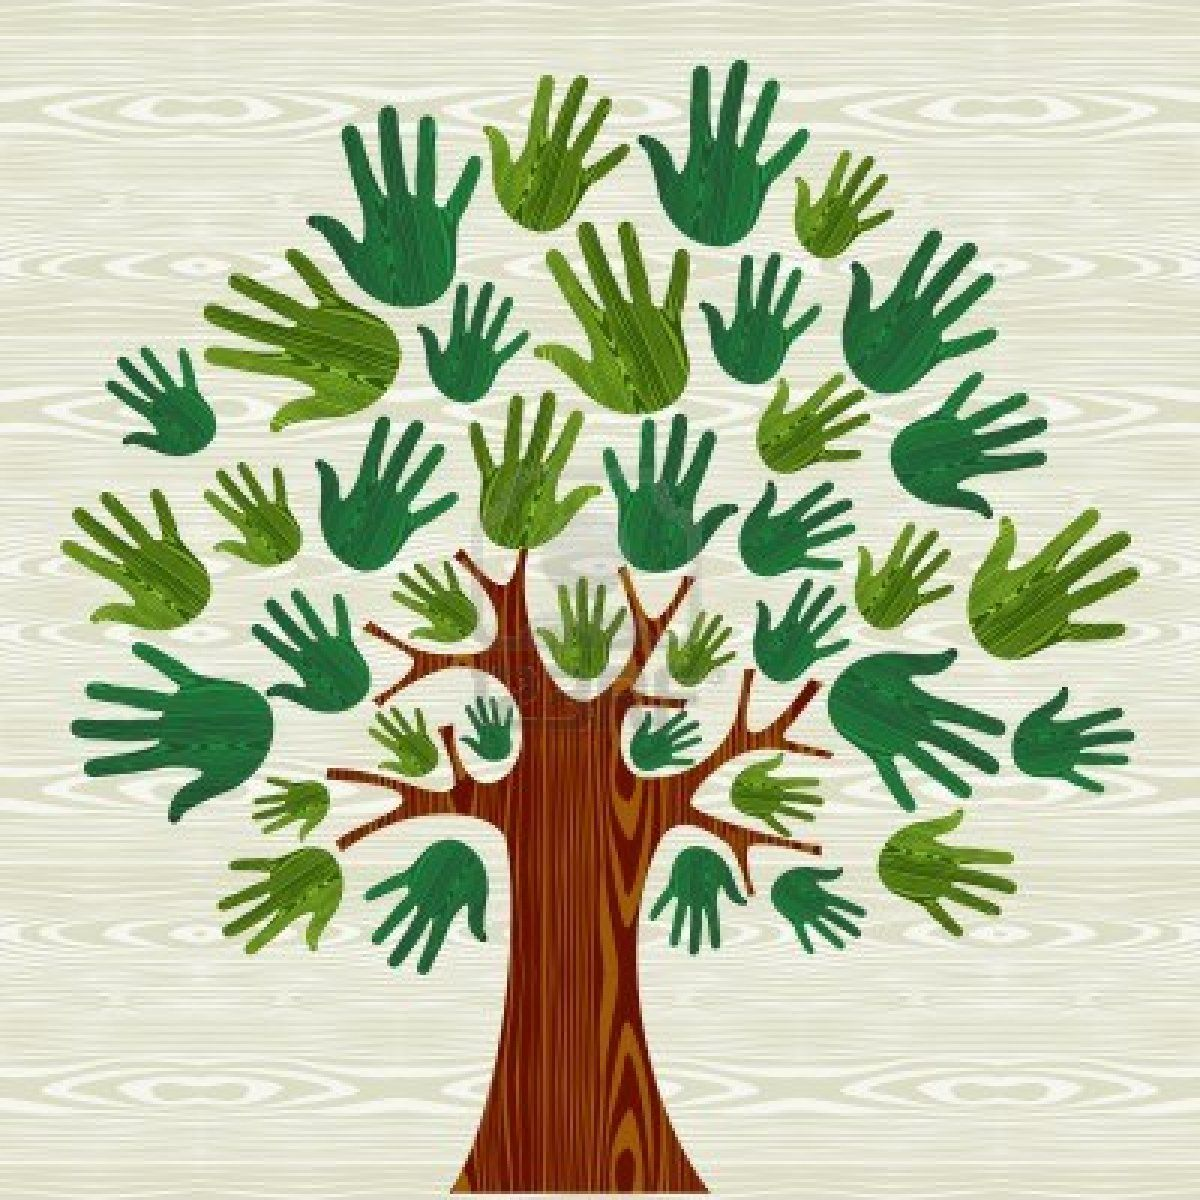 Eco Friendly Tree Hands Illustration For Greeting Card Over Wooden ...